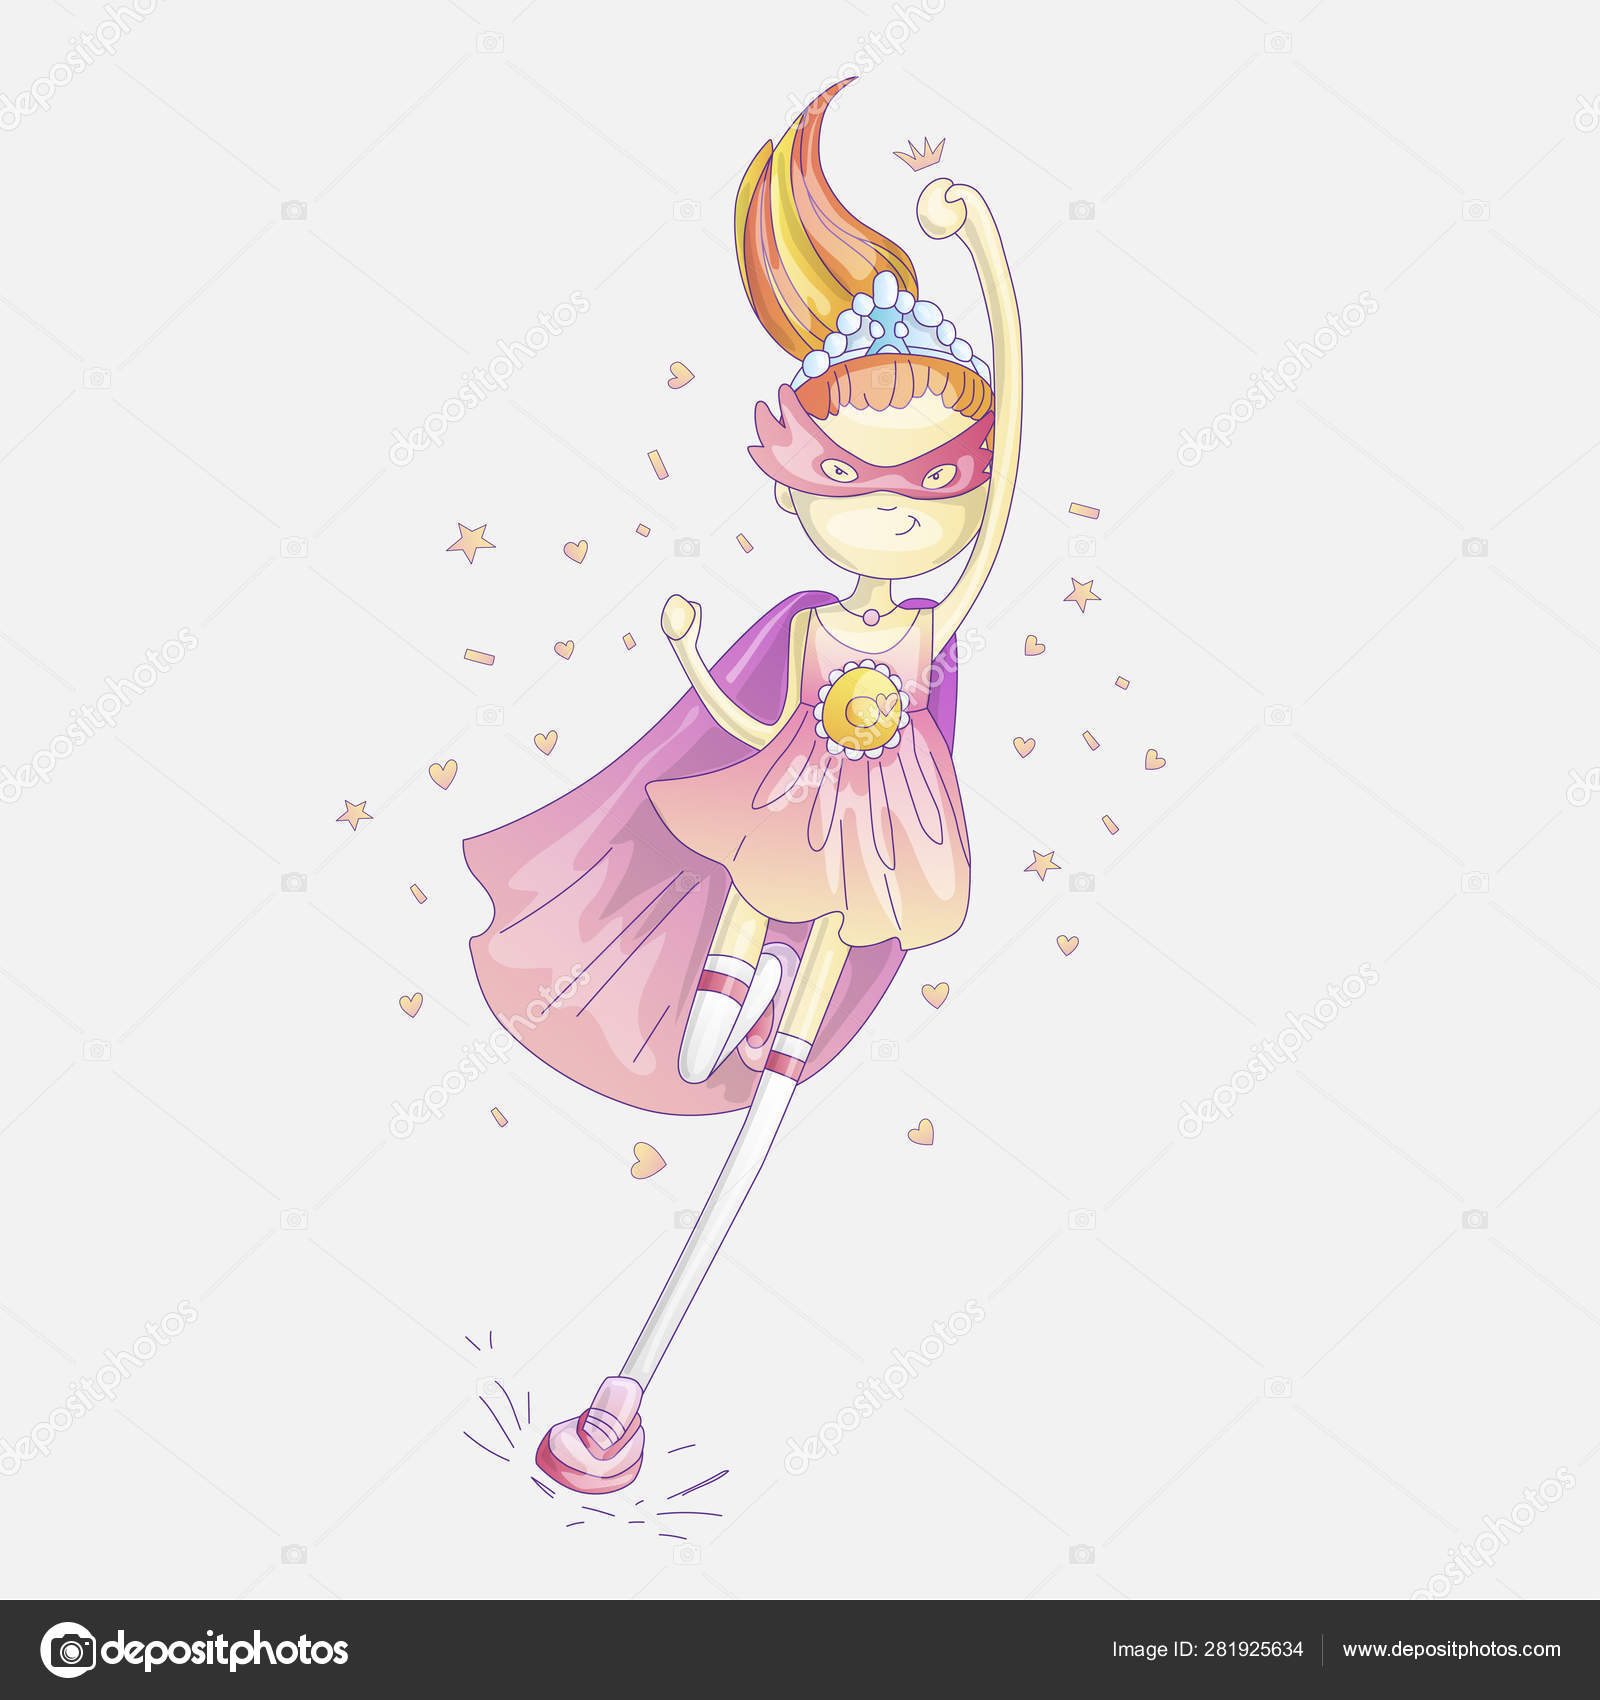 Superhero Princess Little Teen Girl As A Vector Cartoon Illustration With Gradients Super Hero Running And Fighting Brave Cute Feminism Concept About Girls Image By C